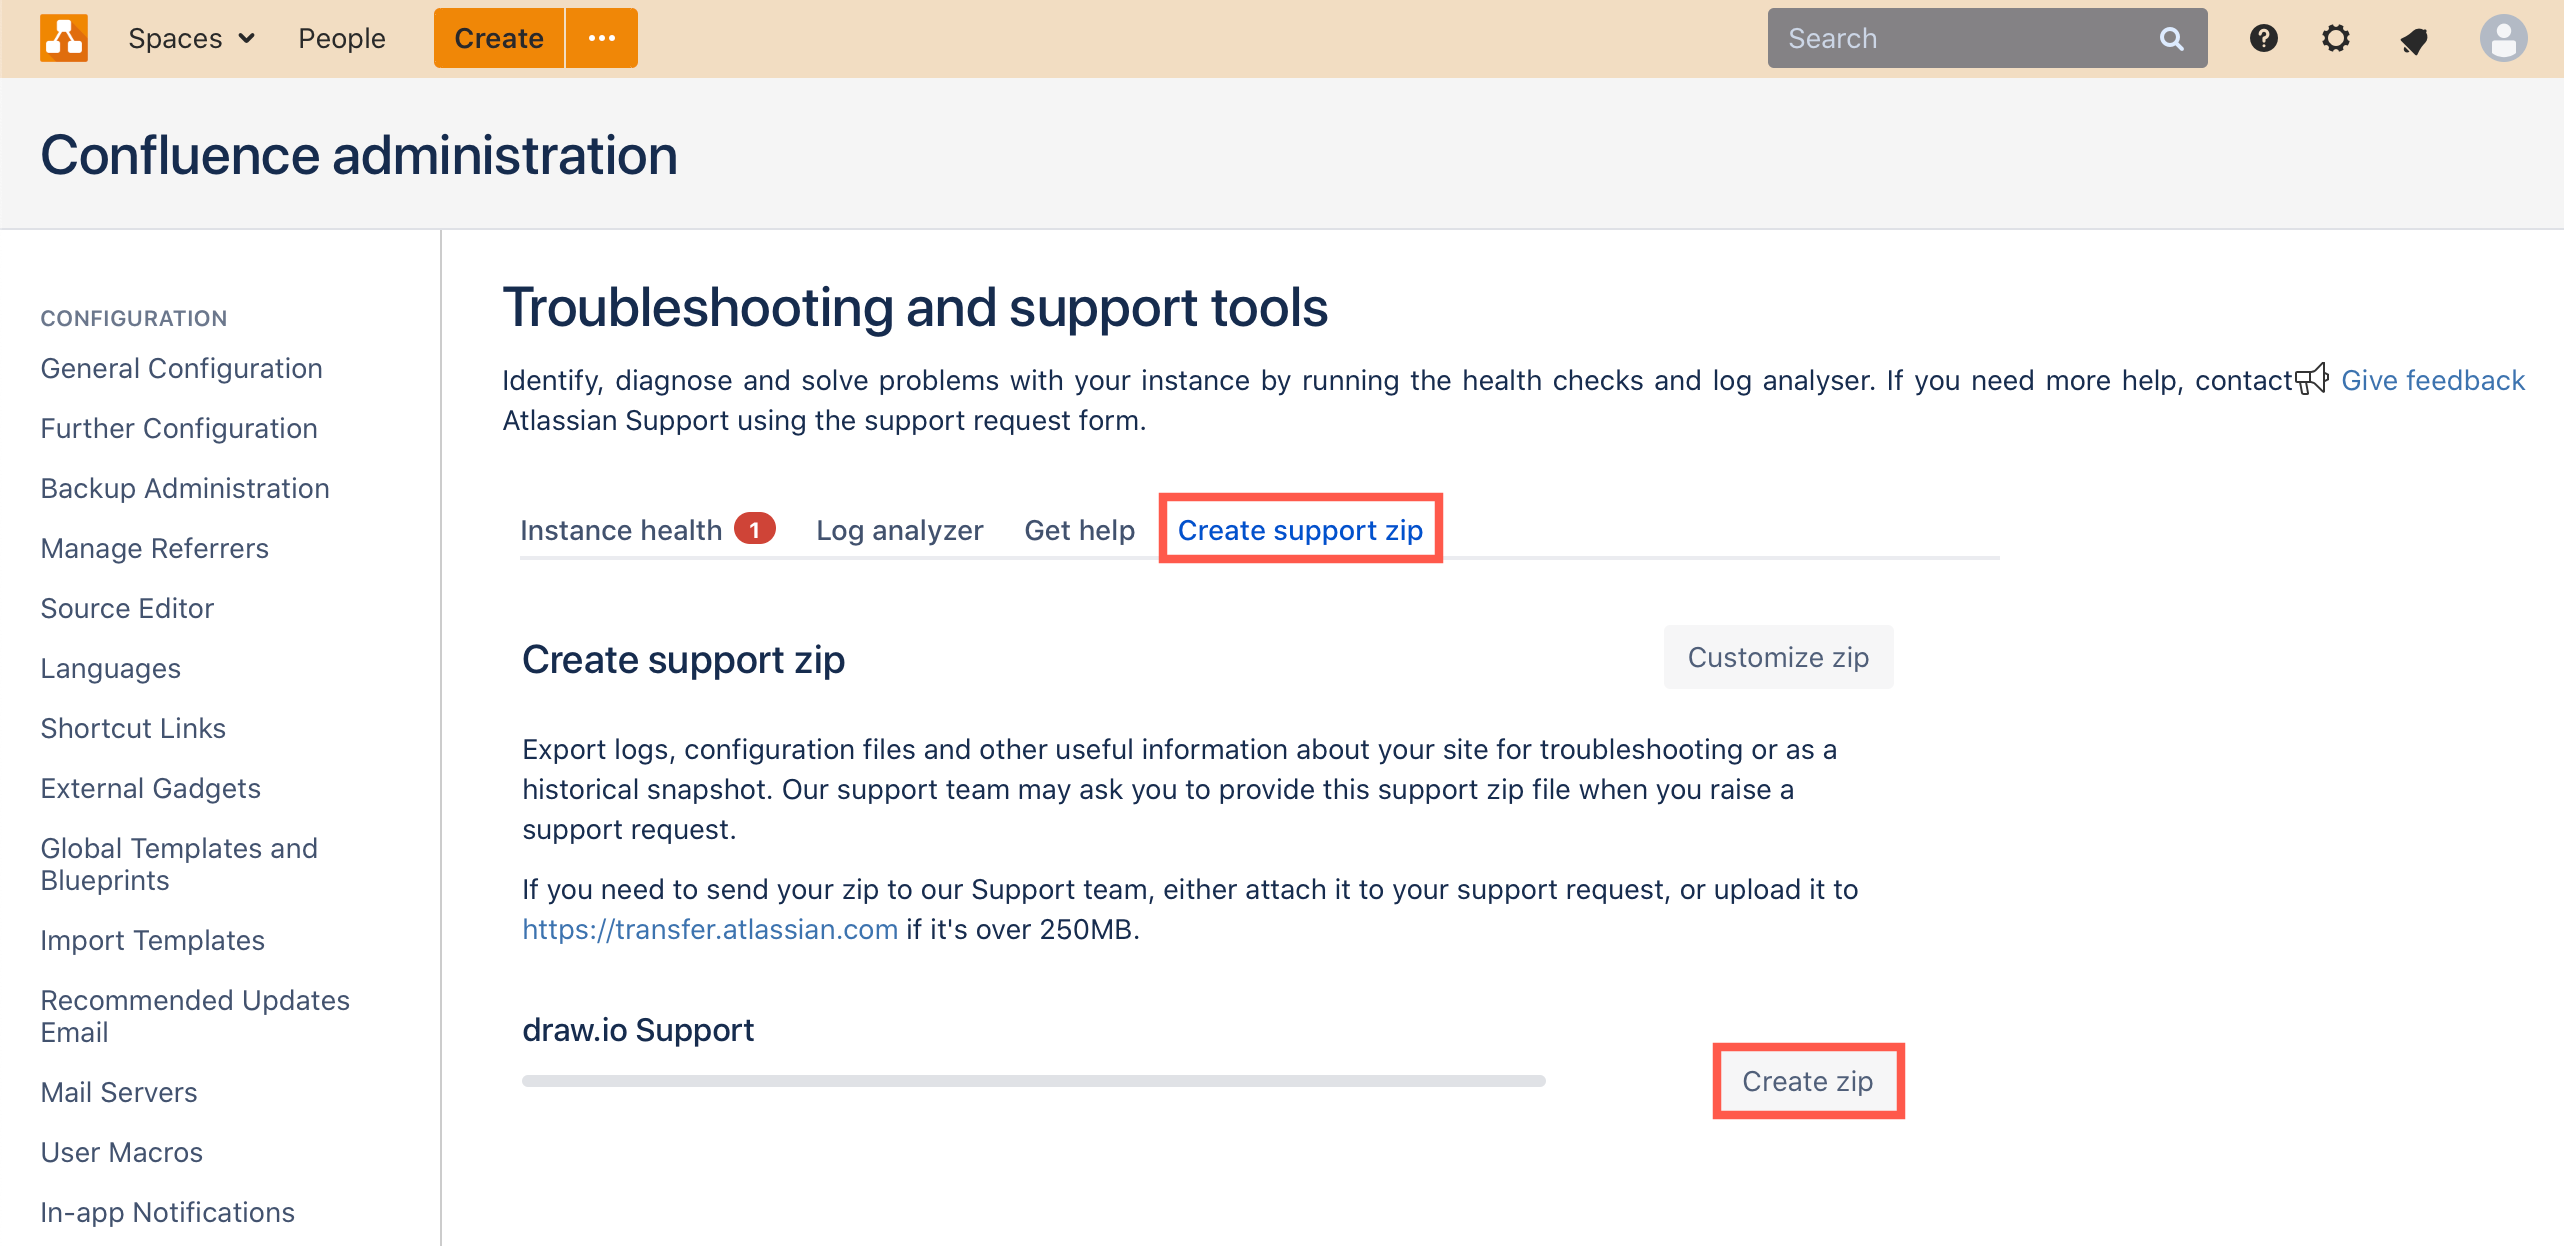 Create a draw.io support zip in Confluence Server